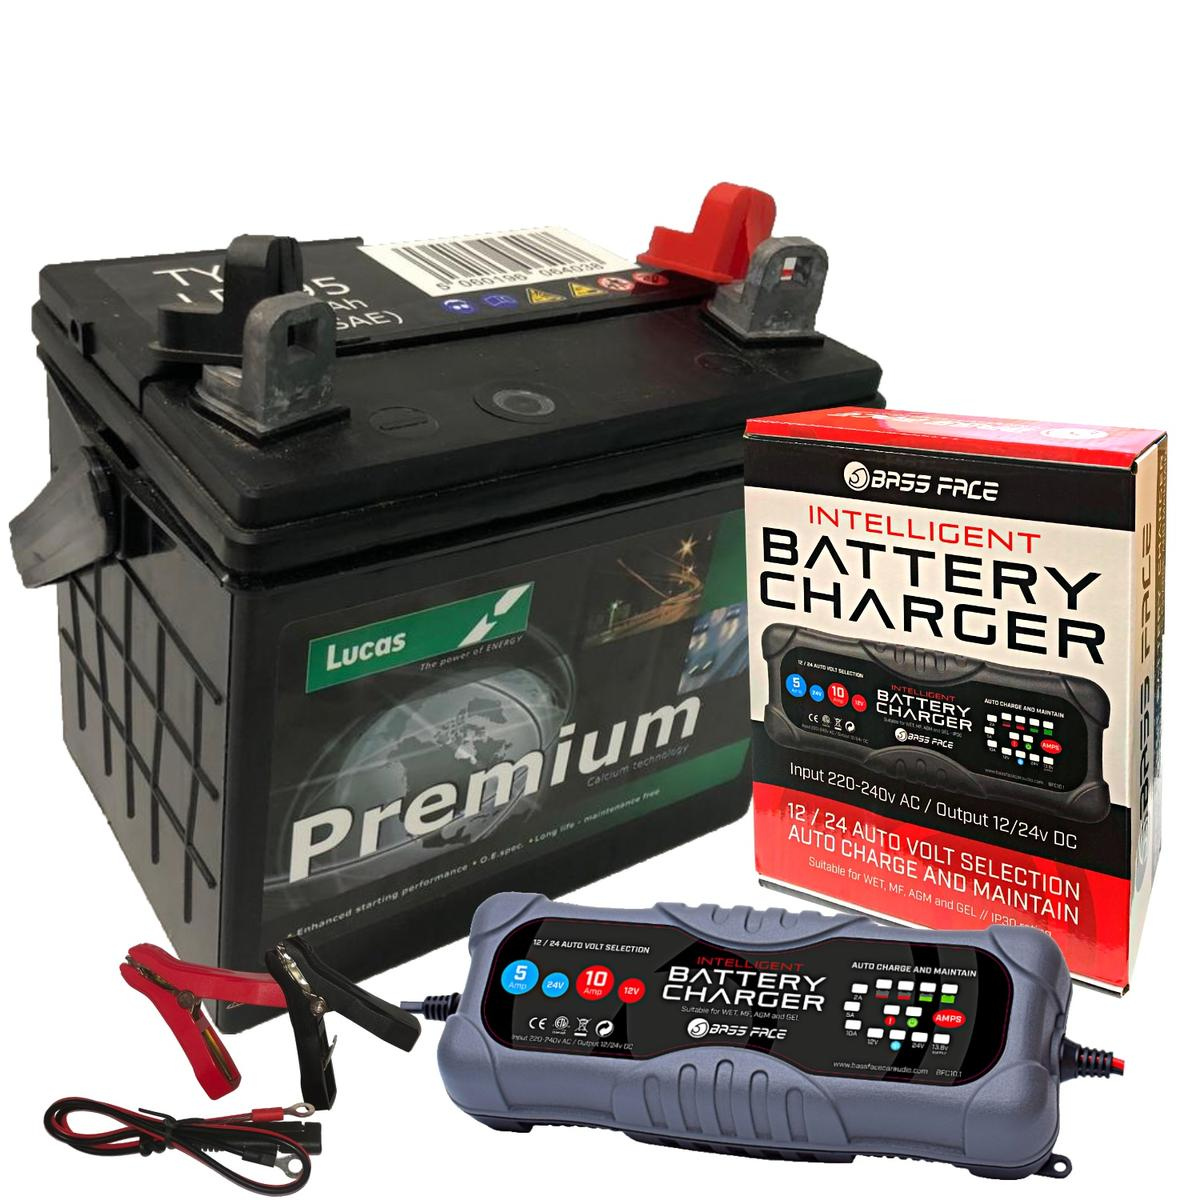 Lucas LP895 Premium 12v Garden Machinery Battery 32Ah 310CCA W/ 10 Amp Charger